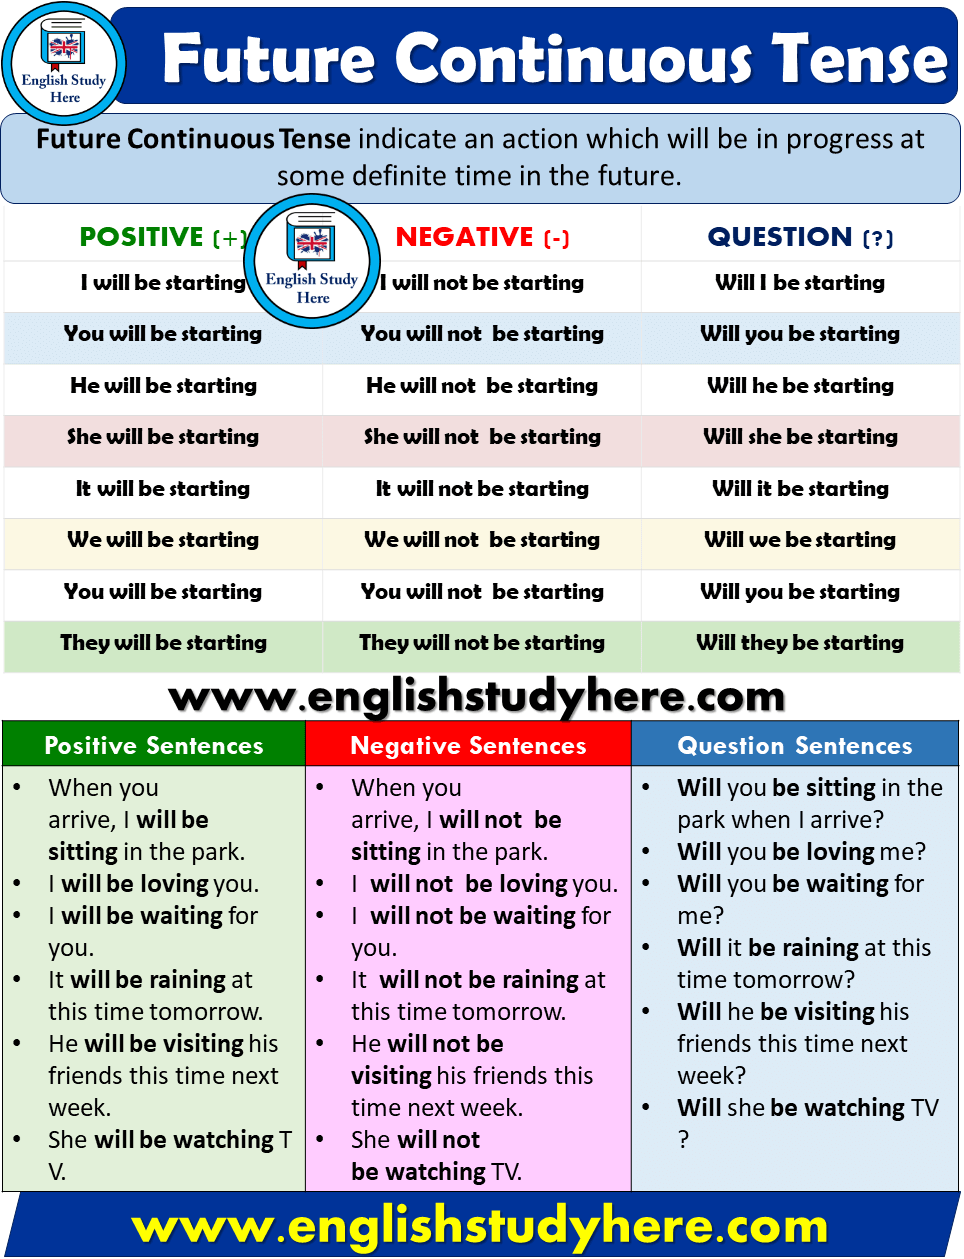 Future Continuous Tense - Detailed Expression